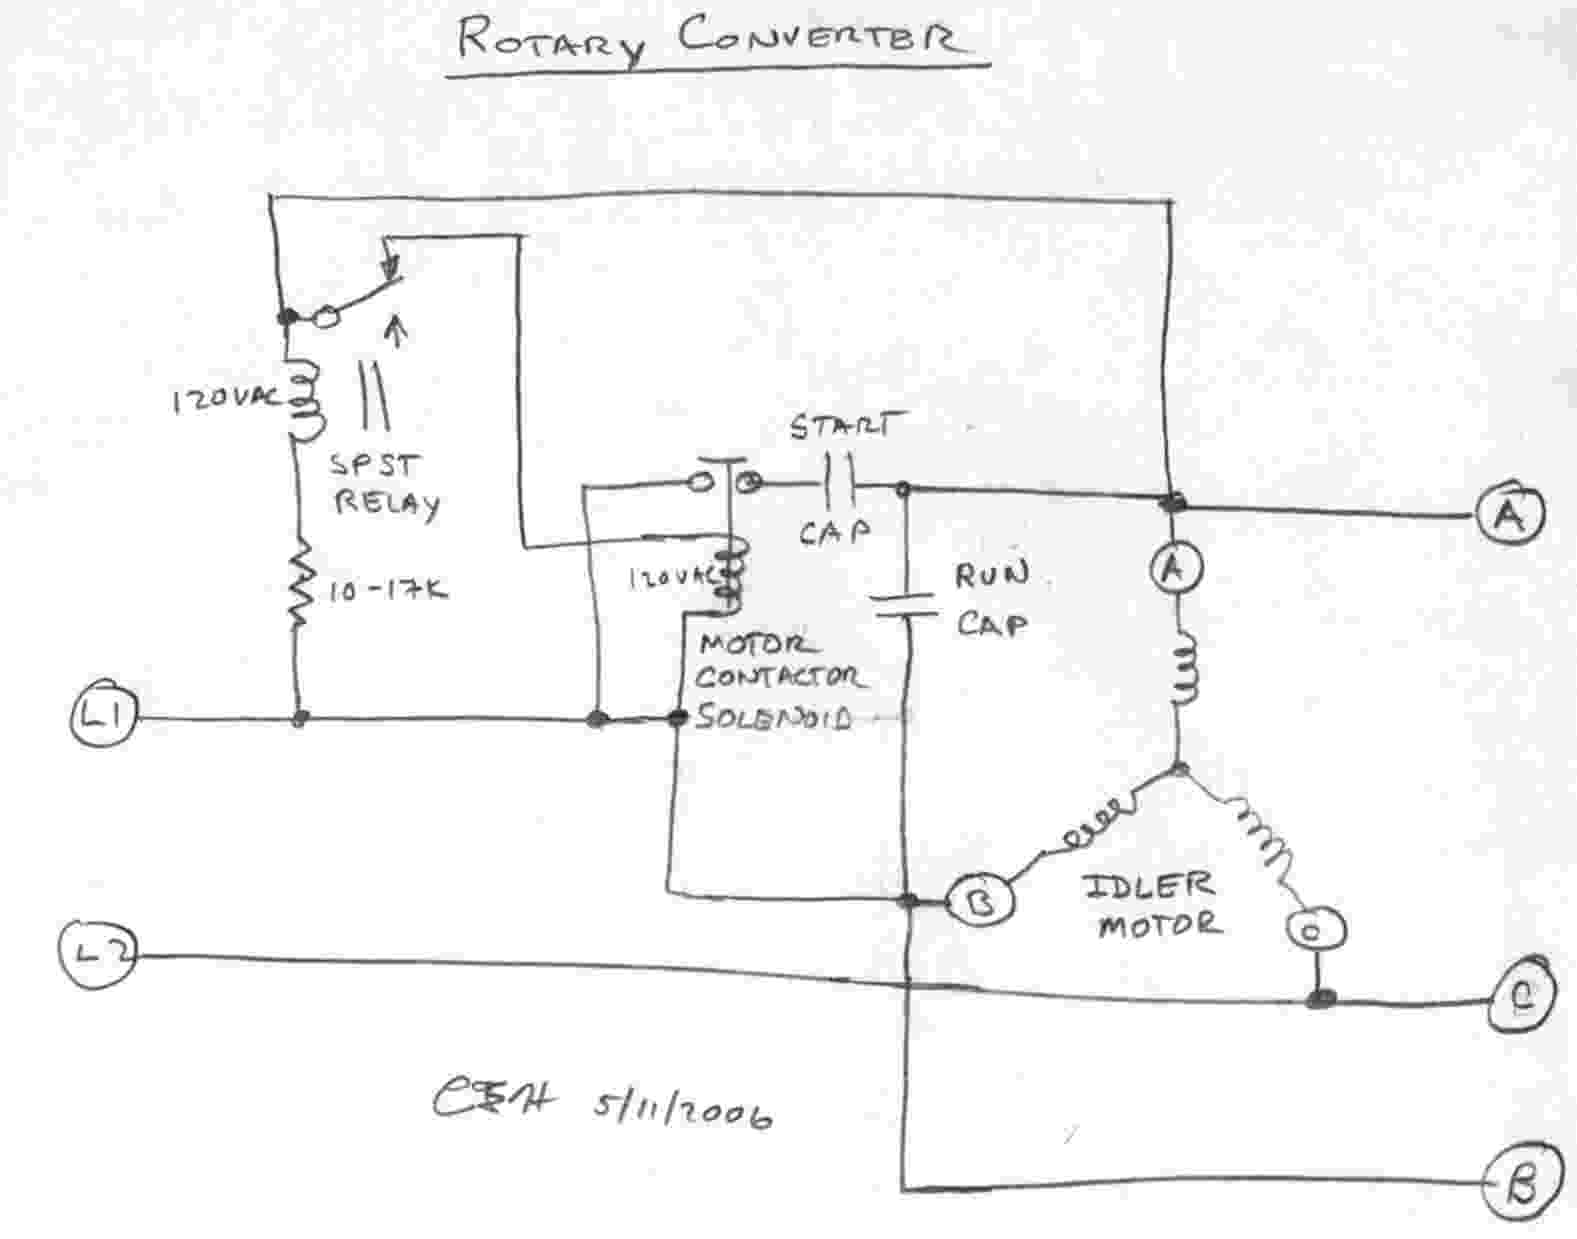 rotaryconv 3 phase converters how to build rotary phase converter wiring diagram at n-0.co